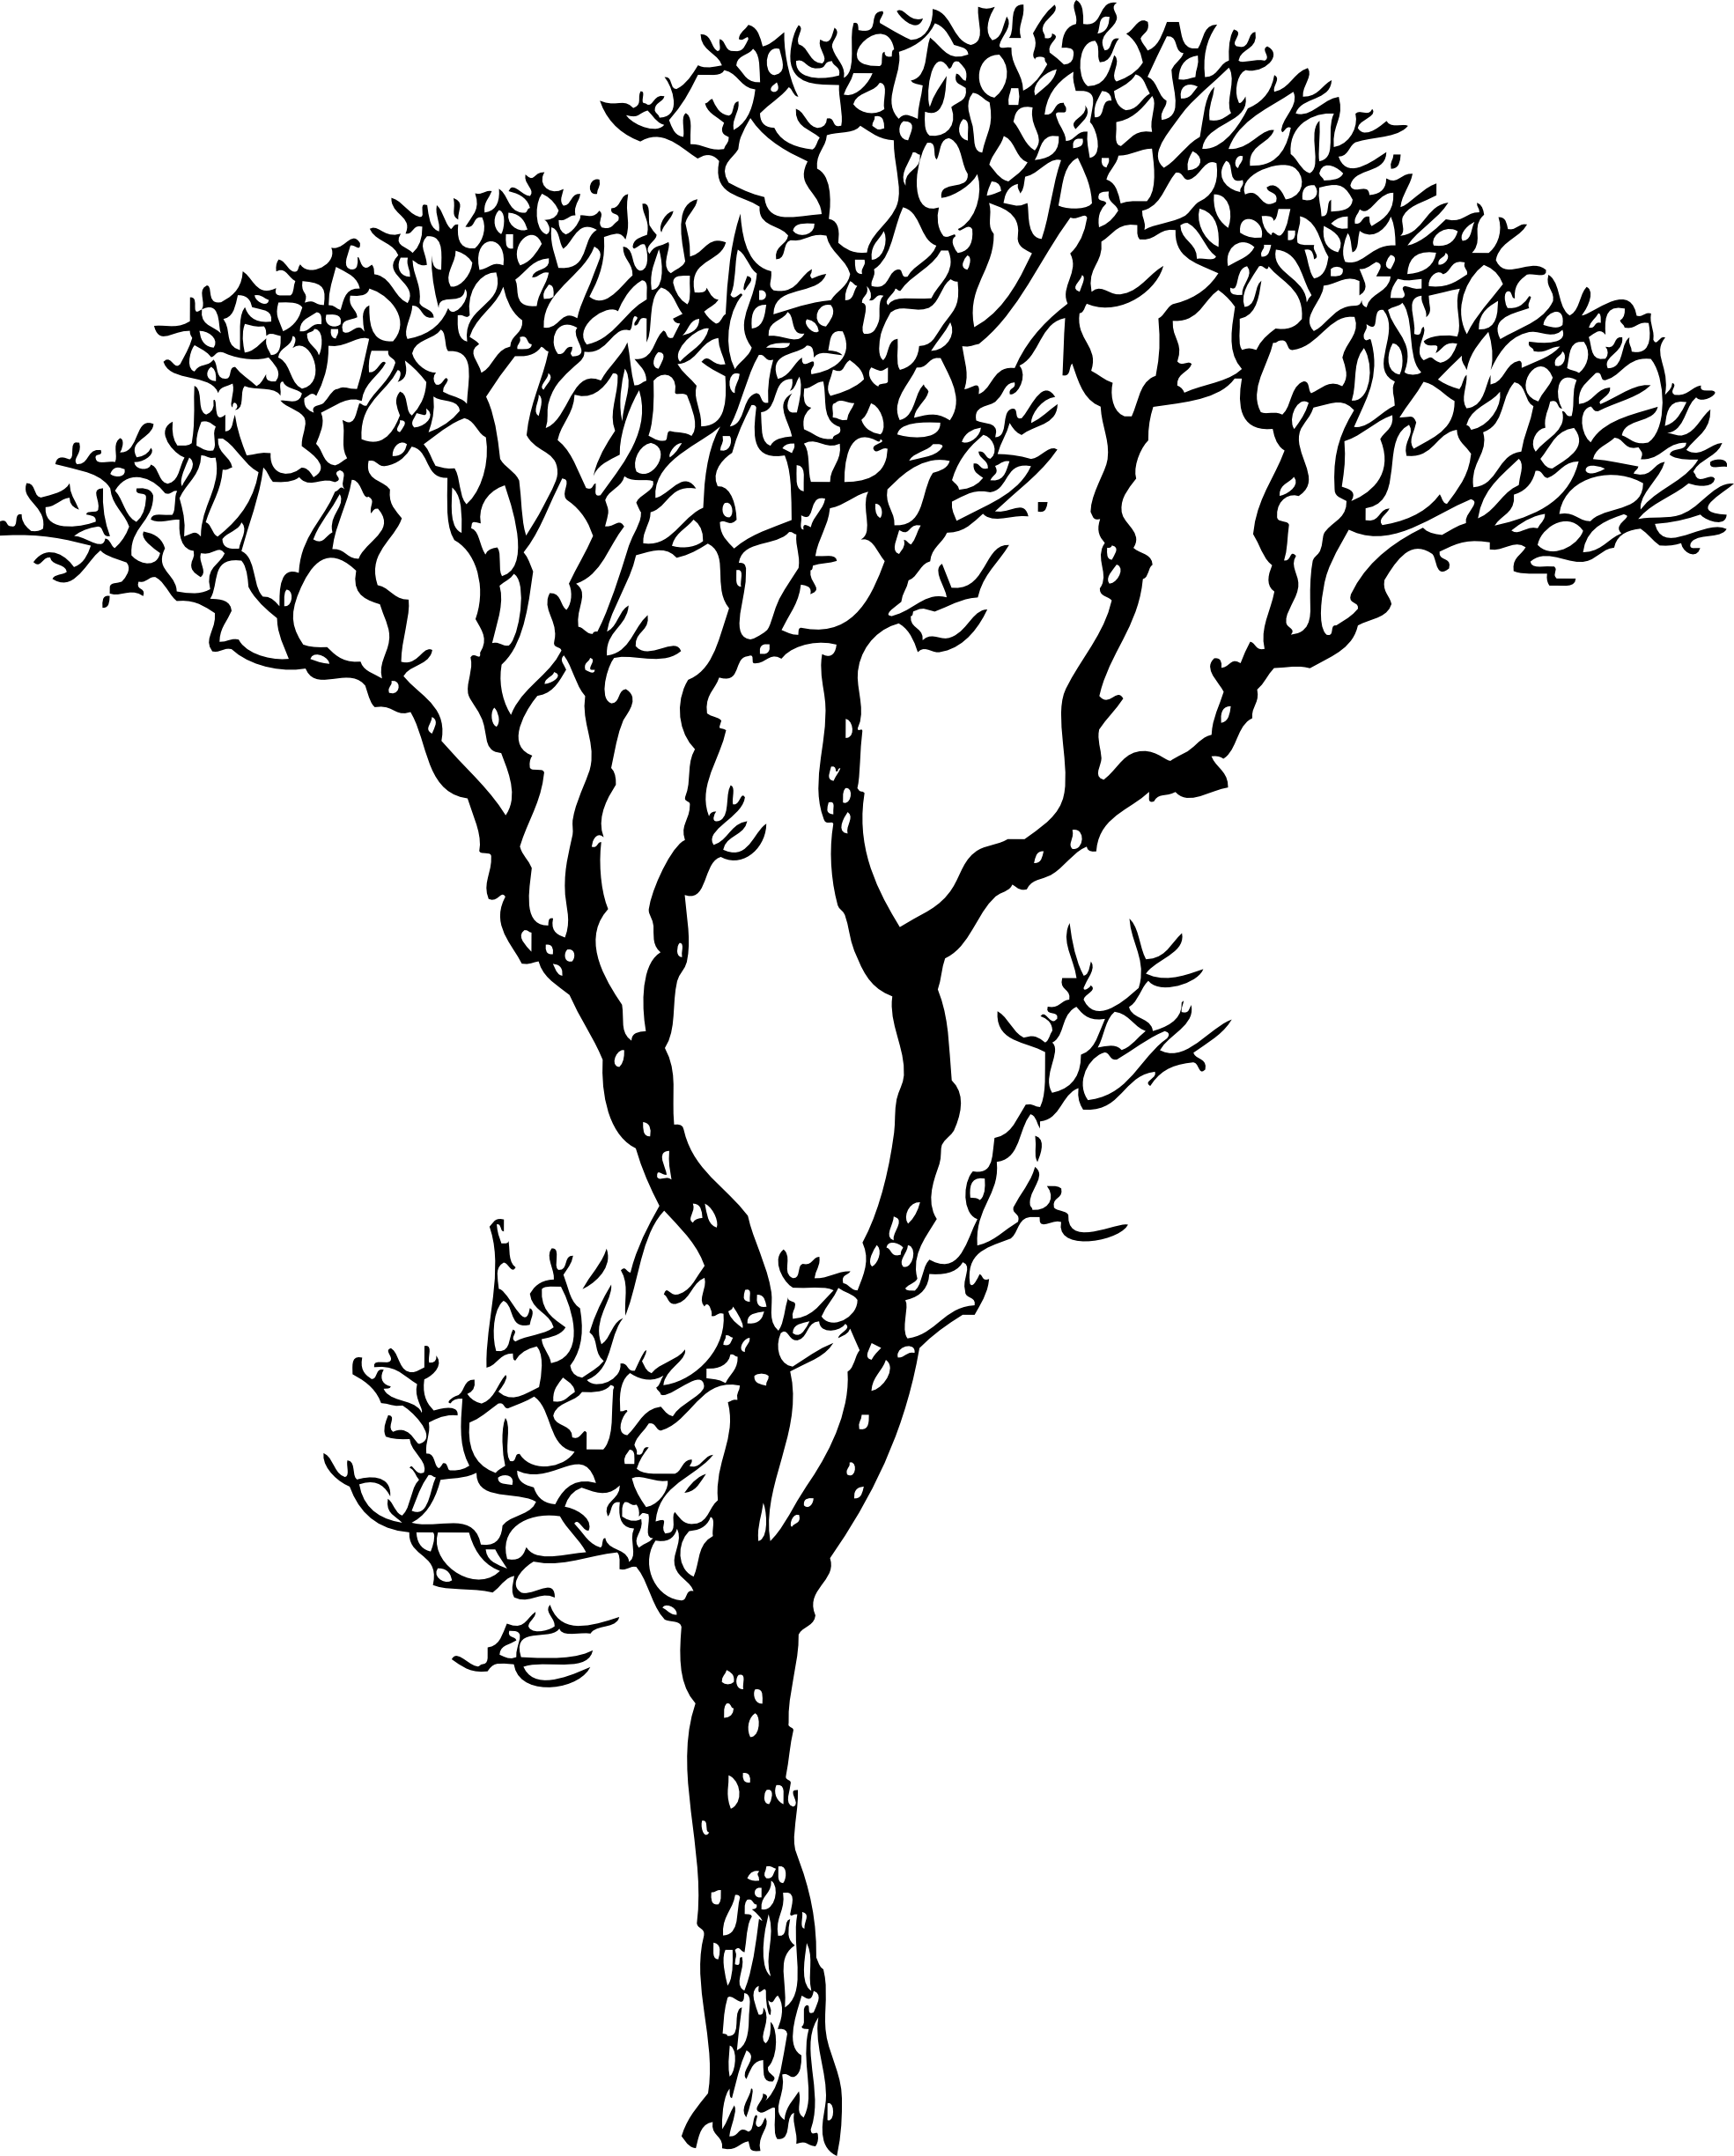 Sun over valley clipart black and white picture royalty free Bare Tree Black White Line Art Coloring Book Colouring Letters ... picture royalty free